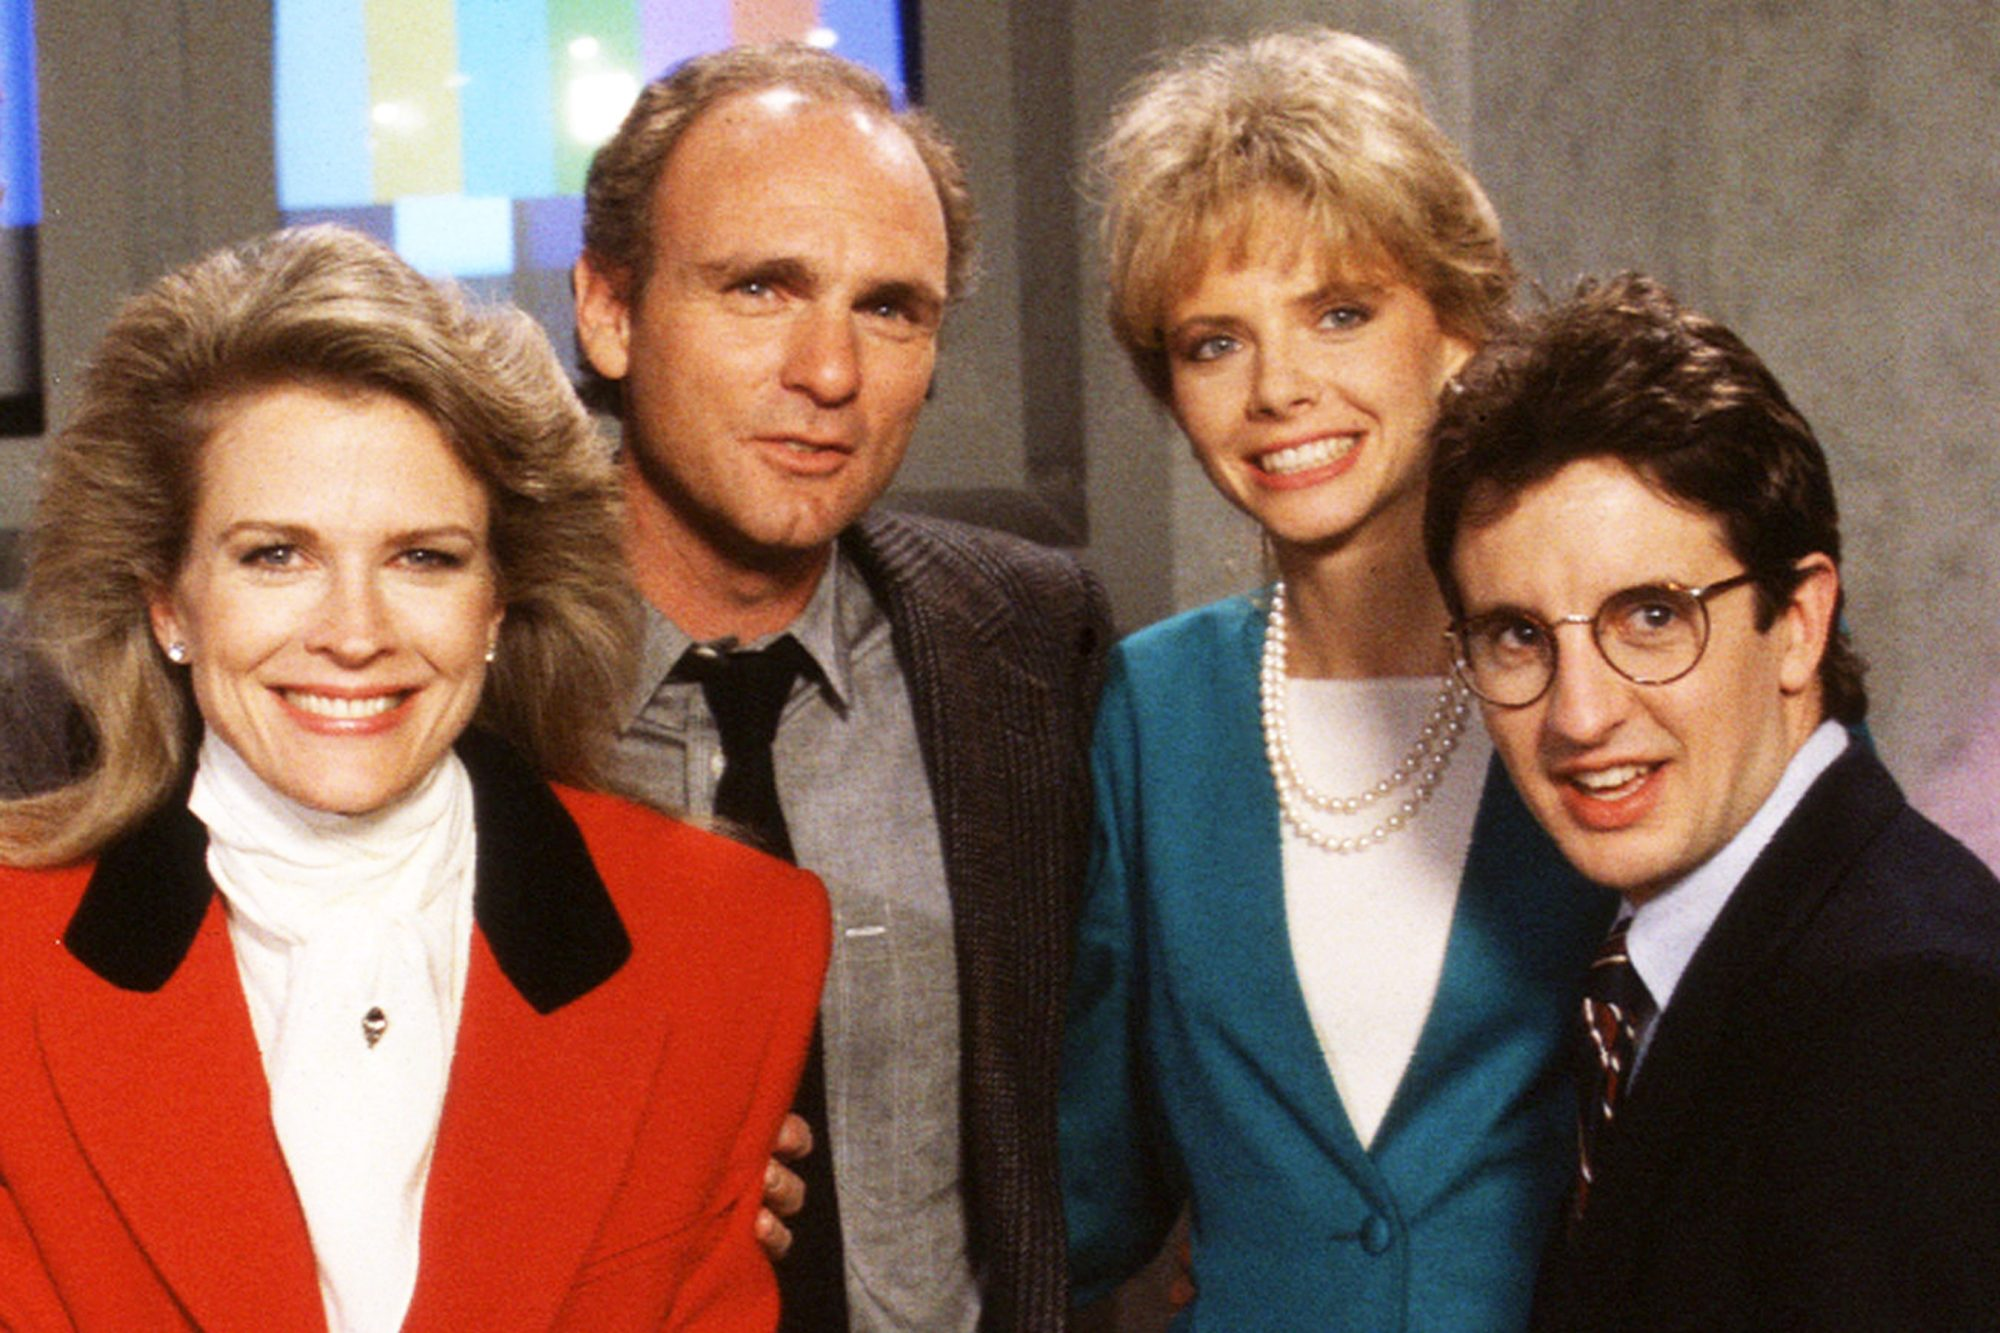 'Murphy Brown' revival brings back Corky, Frank, and Miles